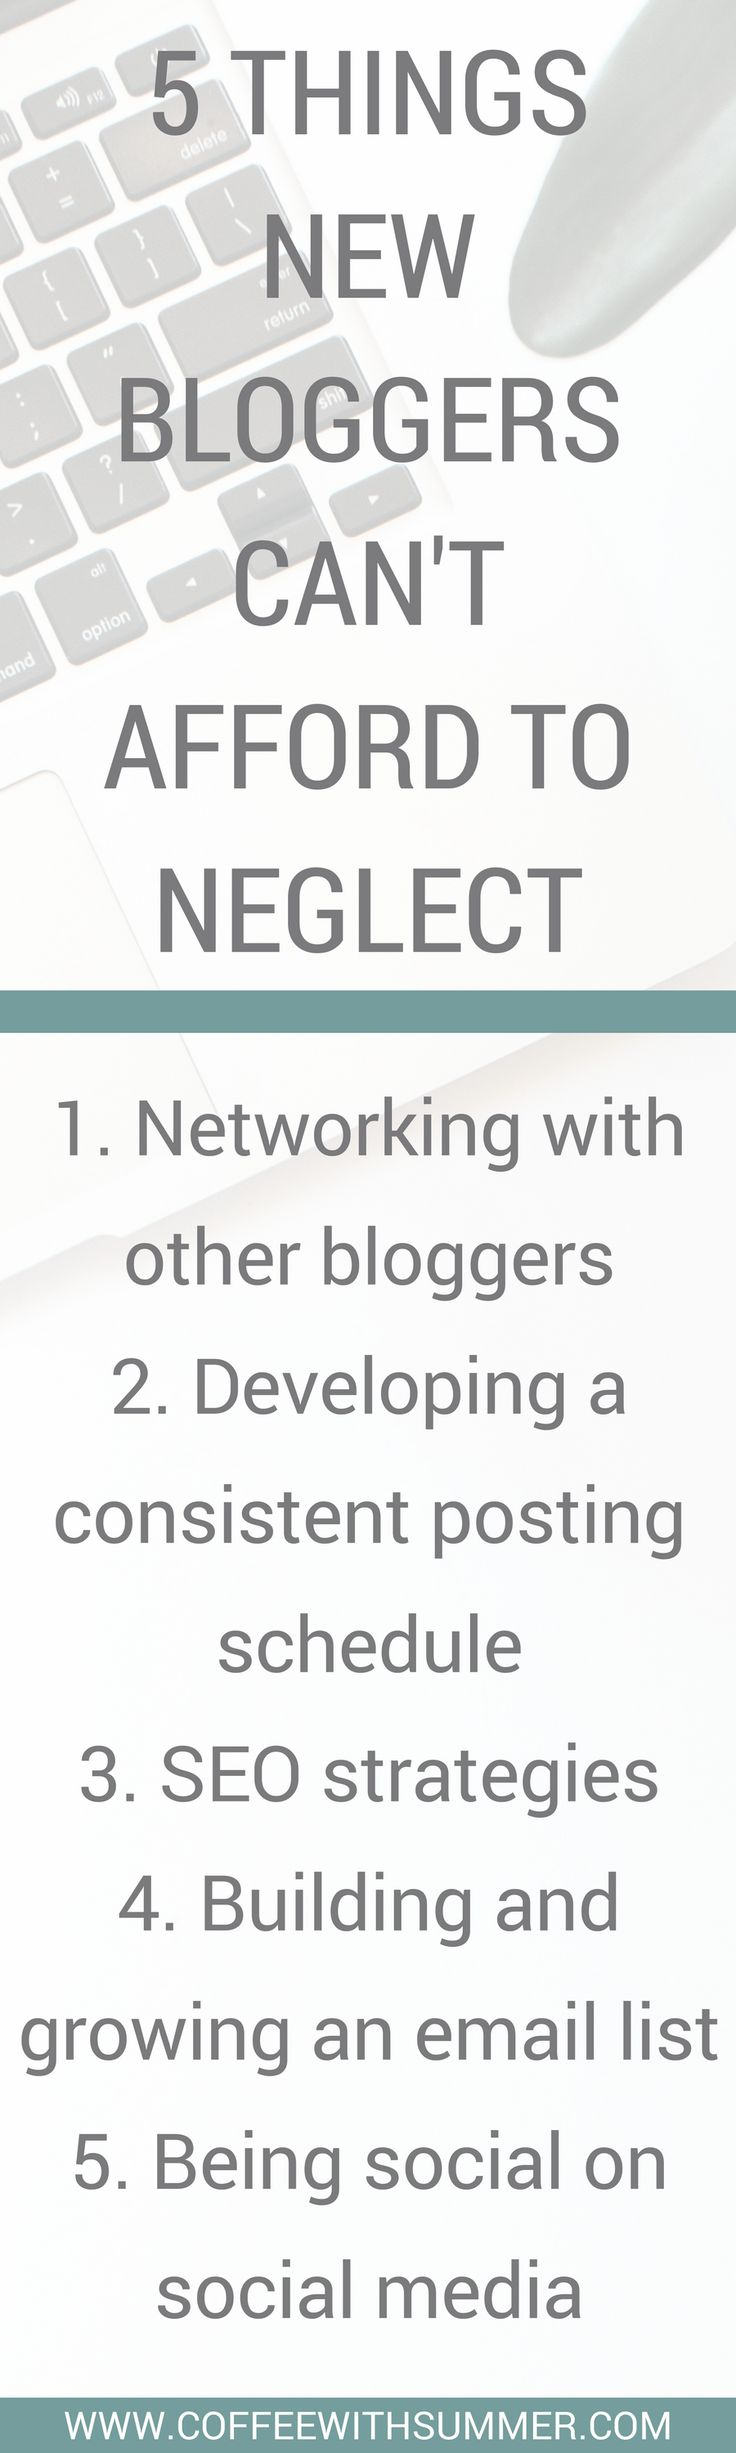 5 Things Bloggers Can't Afford To Neglect | Coffee With Summer